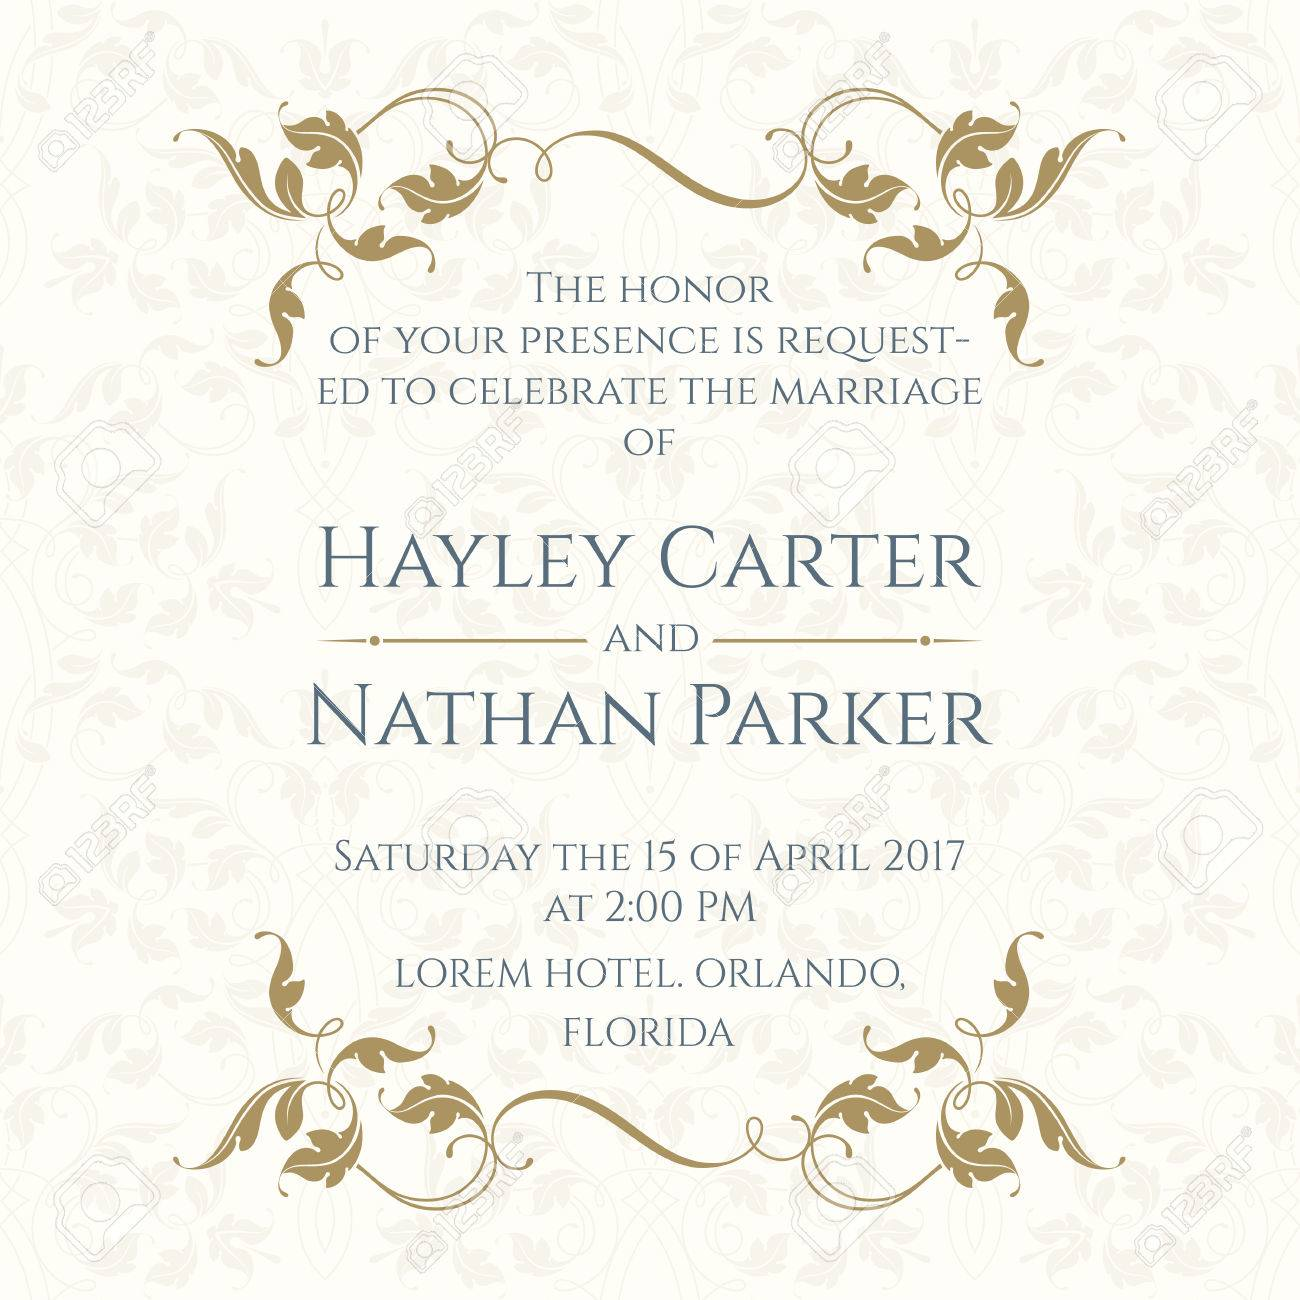 Invitation Card with Floral borders on Seamless Background. Wedding invitation, Save The Date, Valentines Day, Birthday Cards. Vector Template Cards. - 68802288